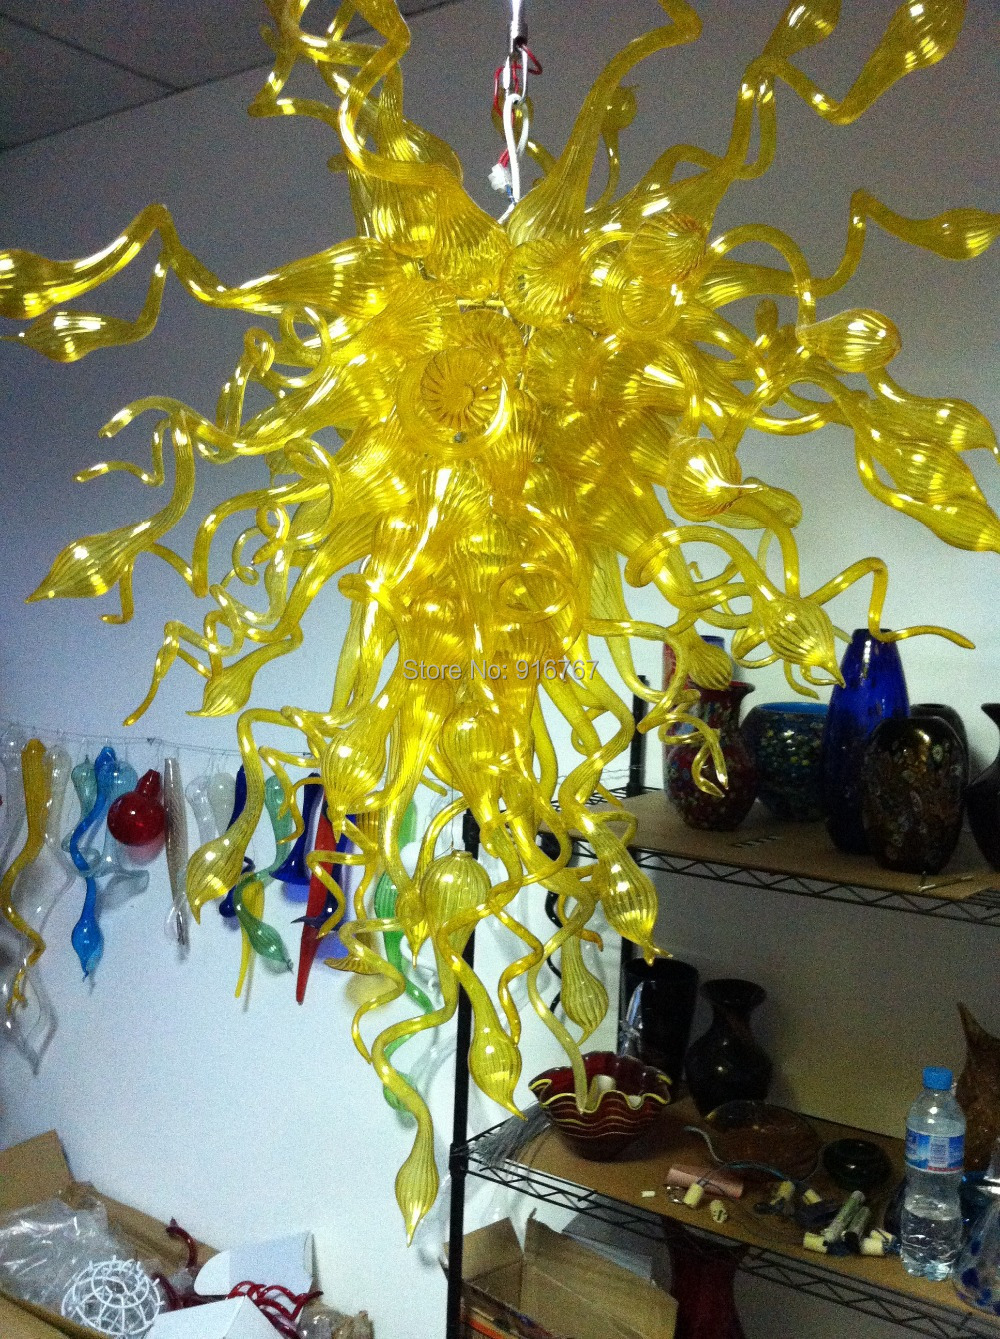 Free Shipping Charming Yellow Chandelier Antique Glass LampsFree Shipping Charming Yellow Chandelier Antique Glass Lamps